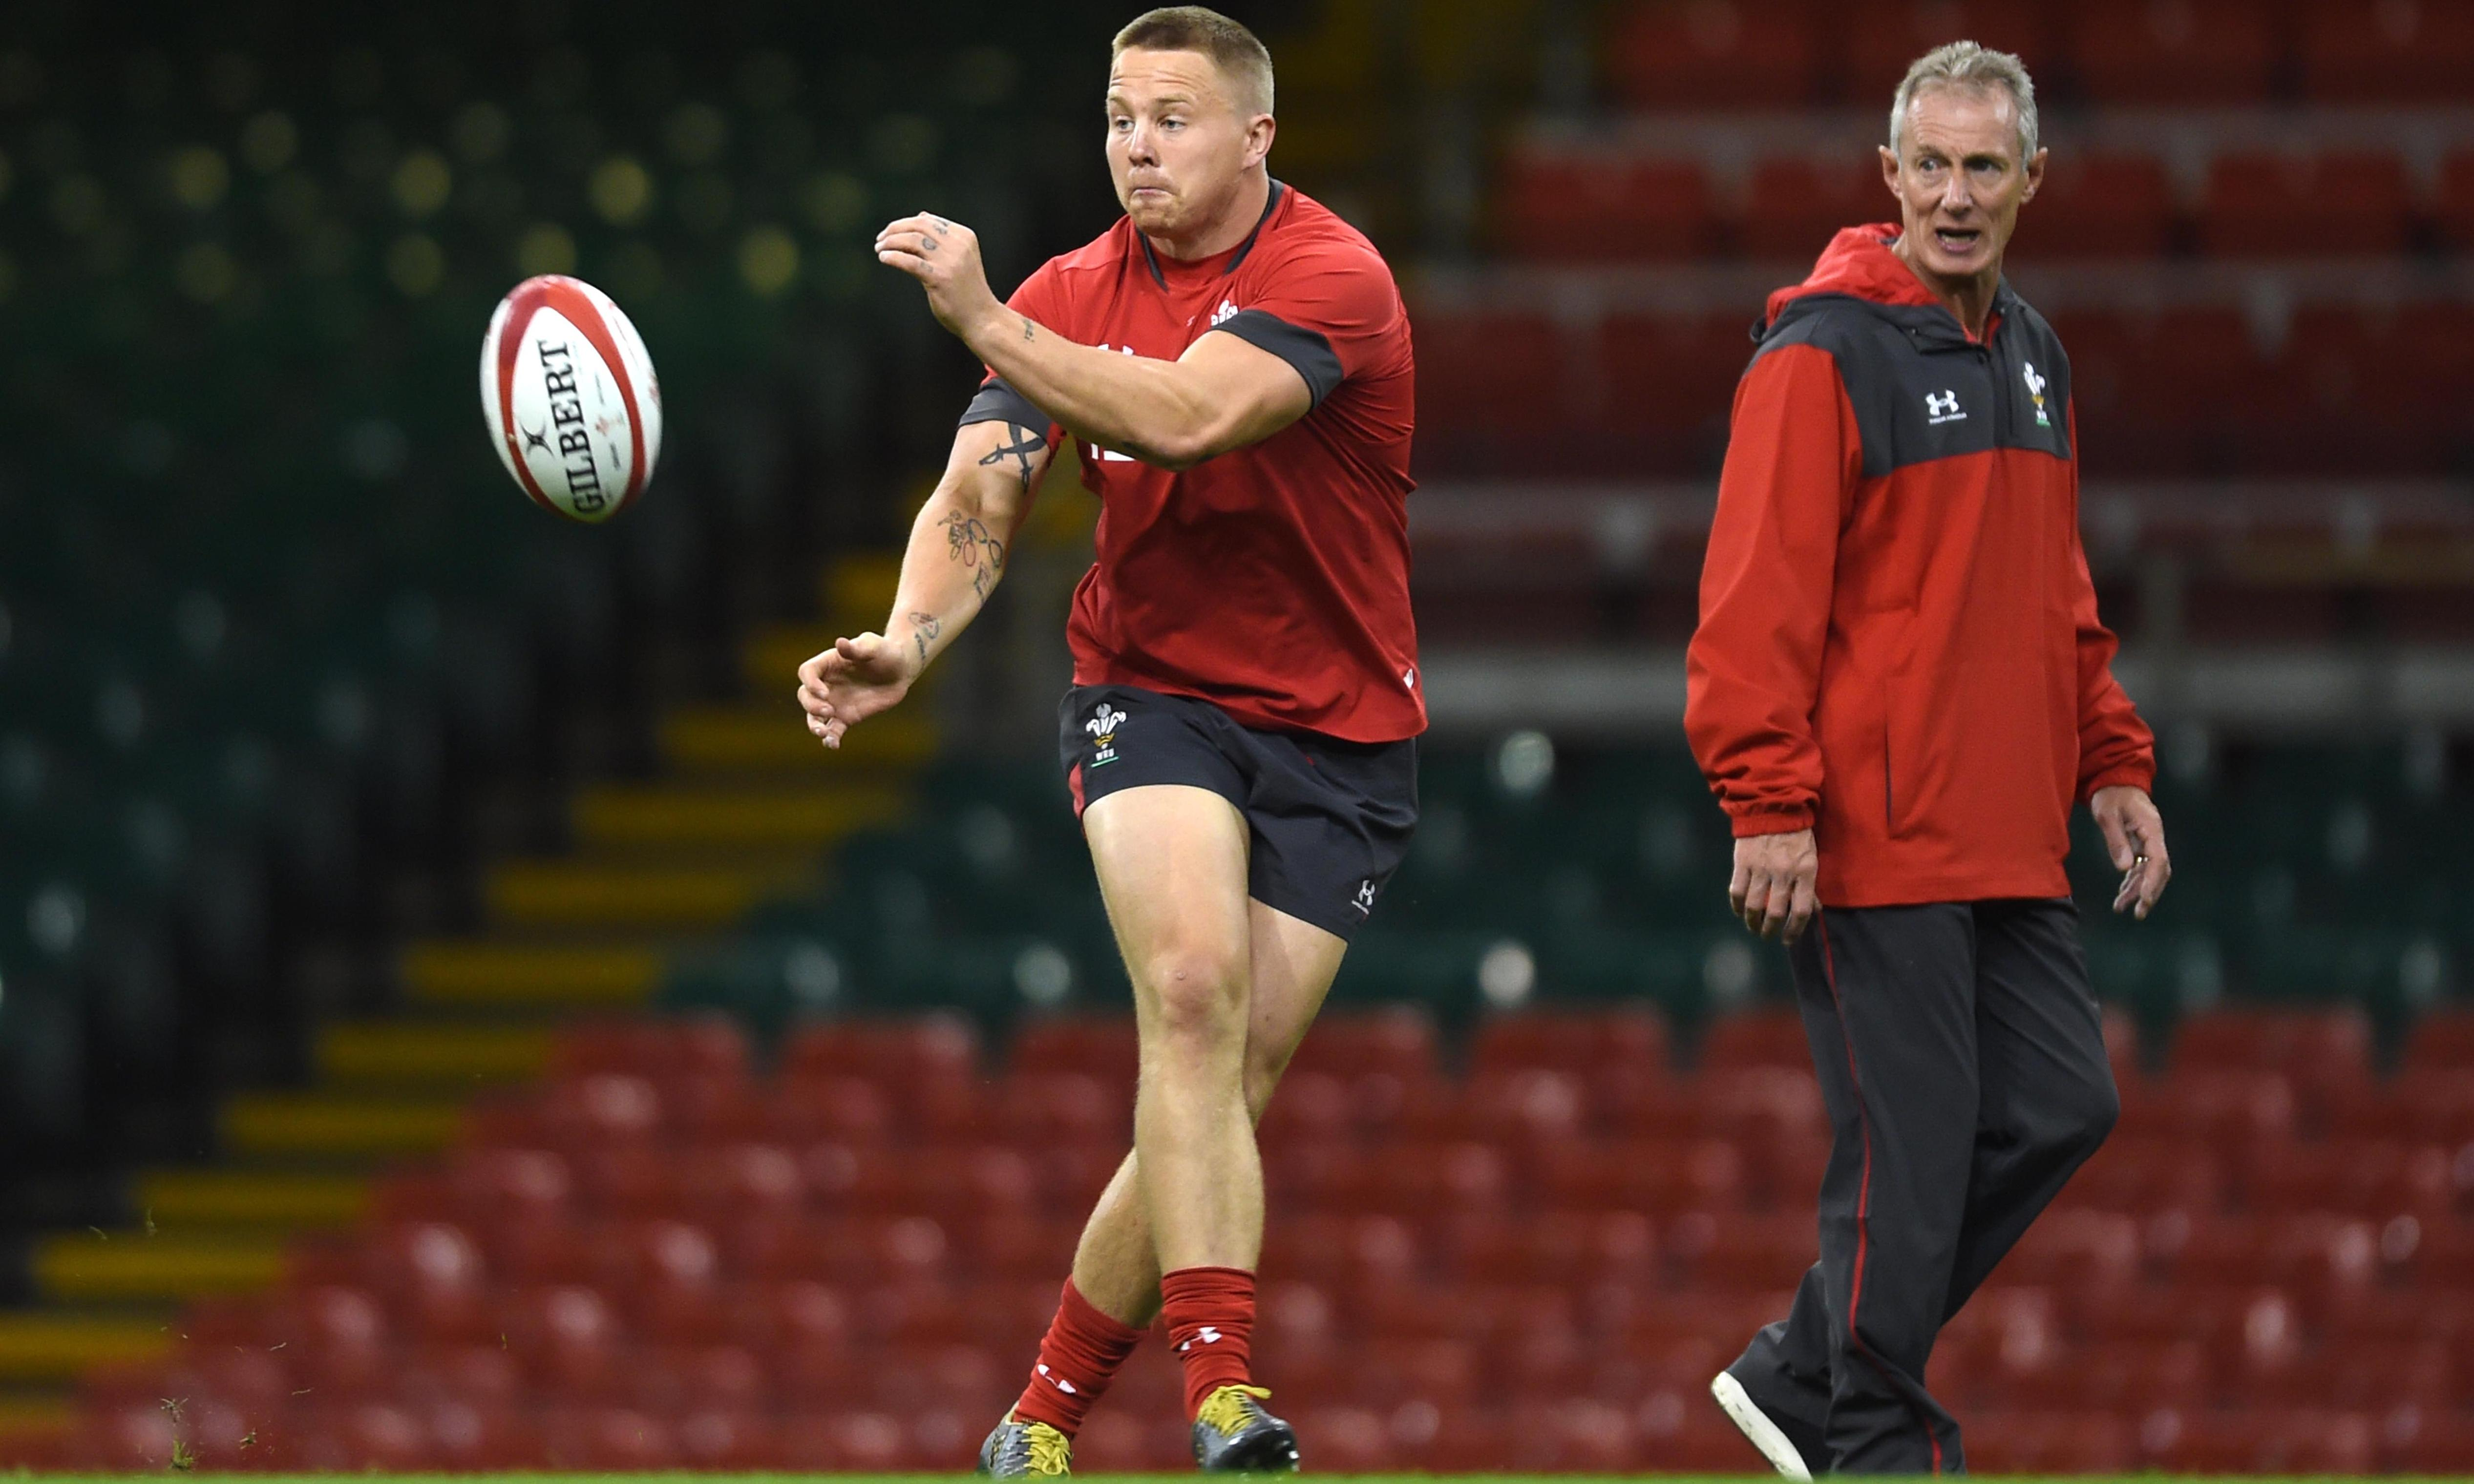 Wales's James Davies: 'I take opportunities and change opinions'